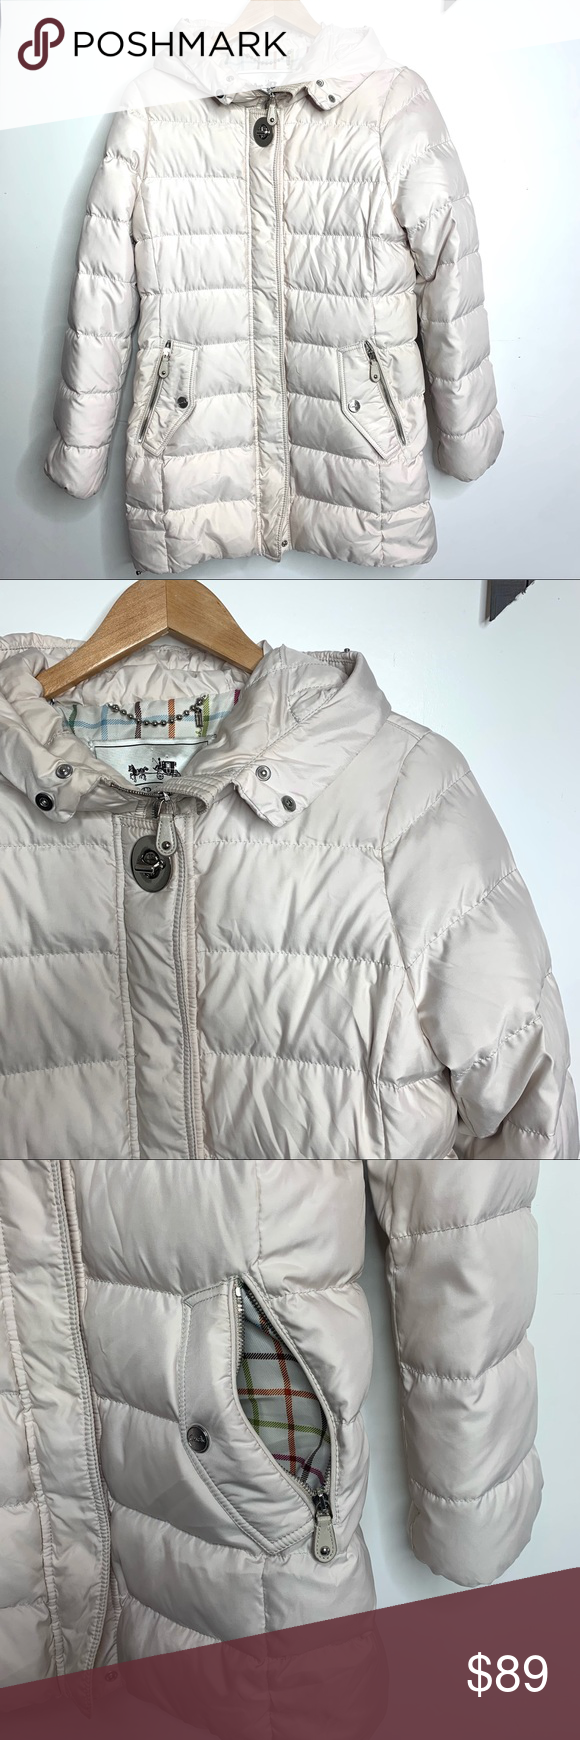 Authentic Coach Puffer Jacket White Small Hooded Jackets Puffer Jackets Clothes Design [ 1740 x 580 Pixel ]